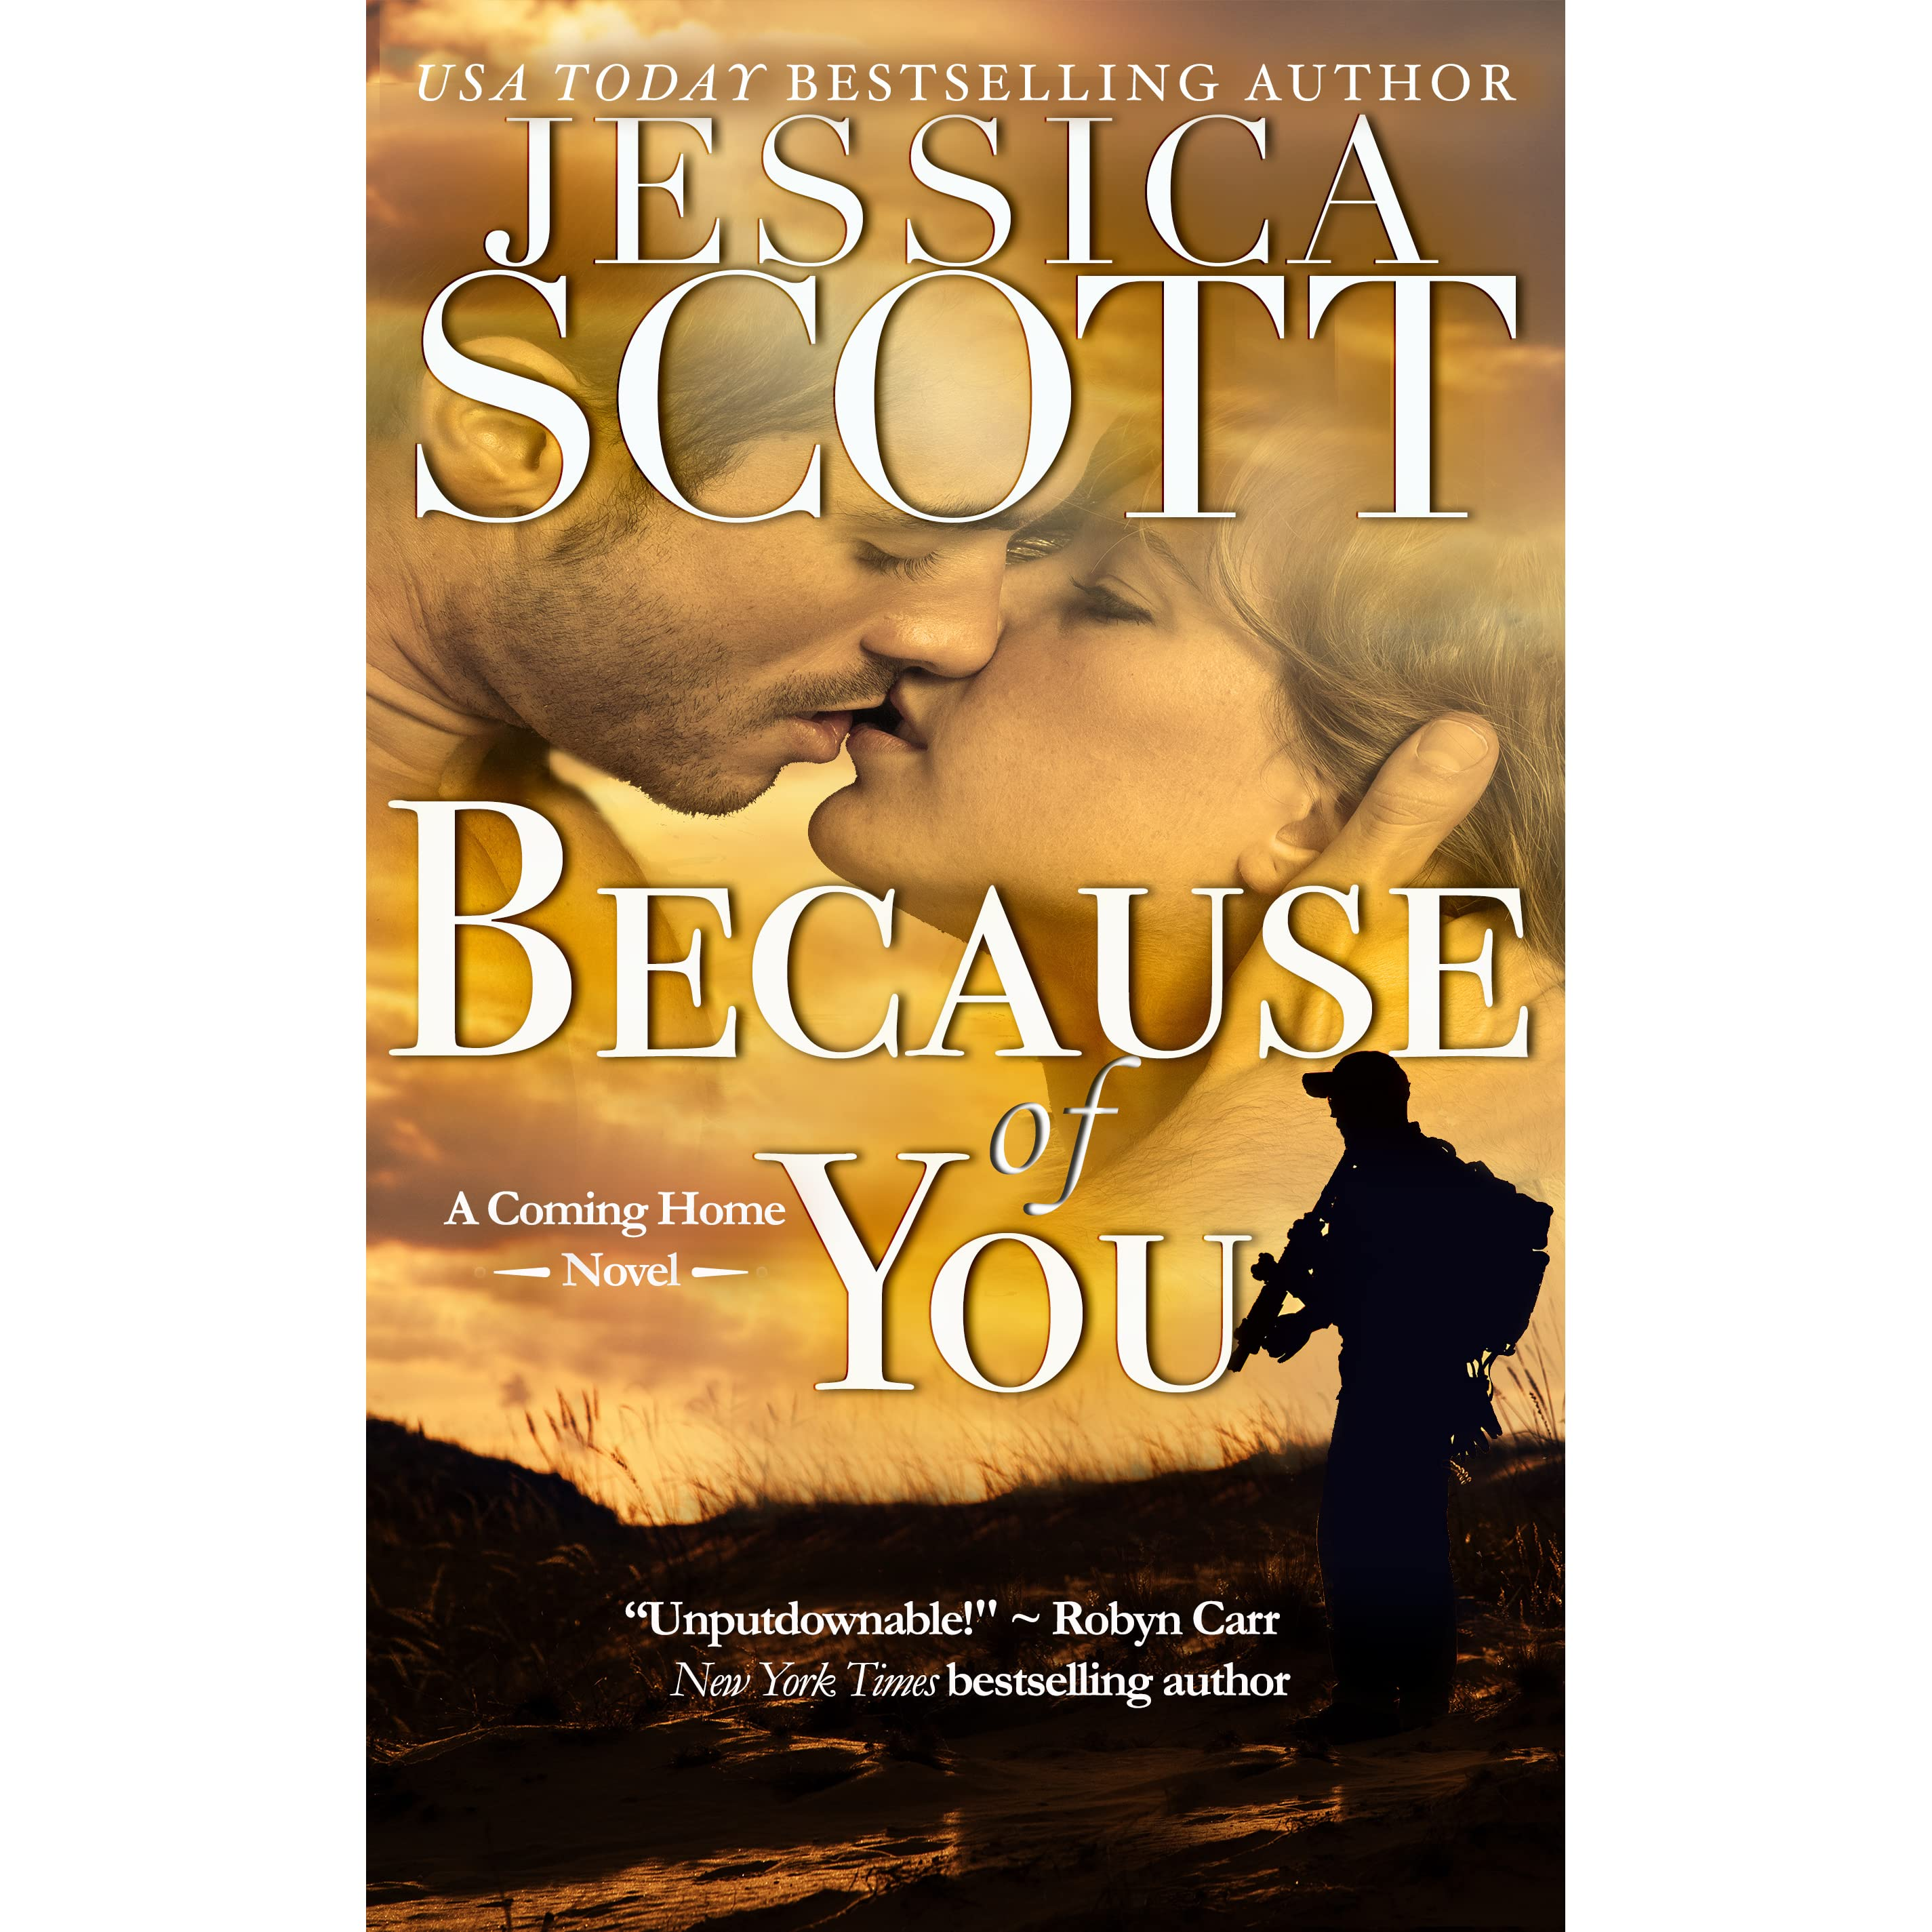 Because of You (Coming Home, #1) by Jessica Scott